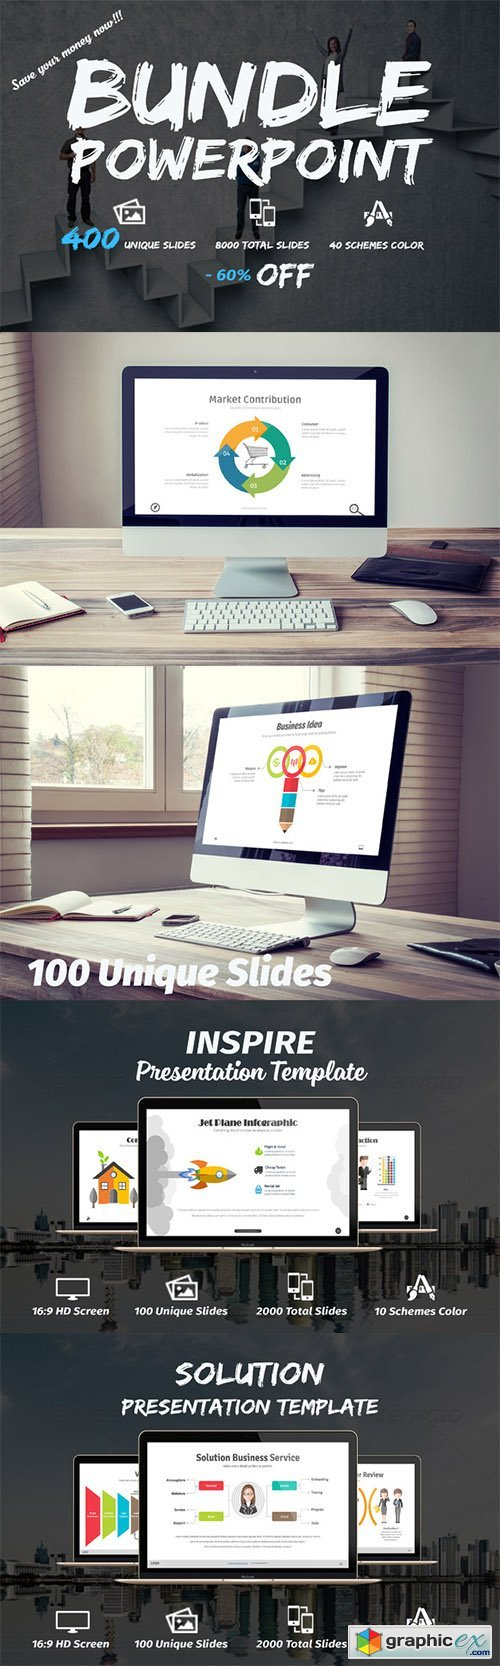 BUNDLE | Powerpoint Template